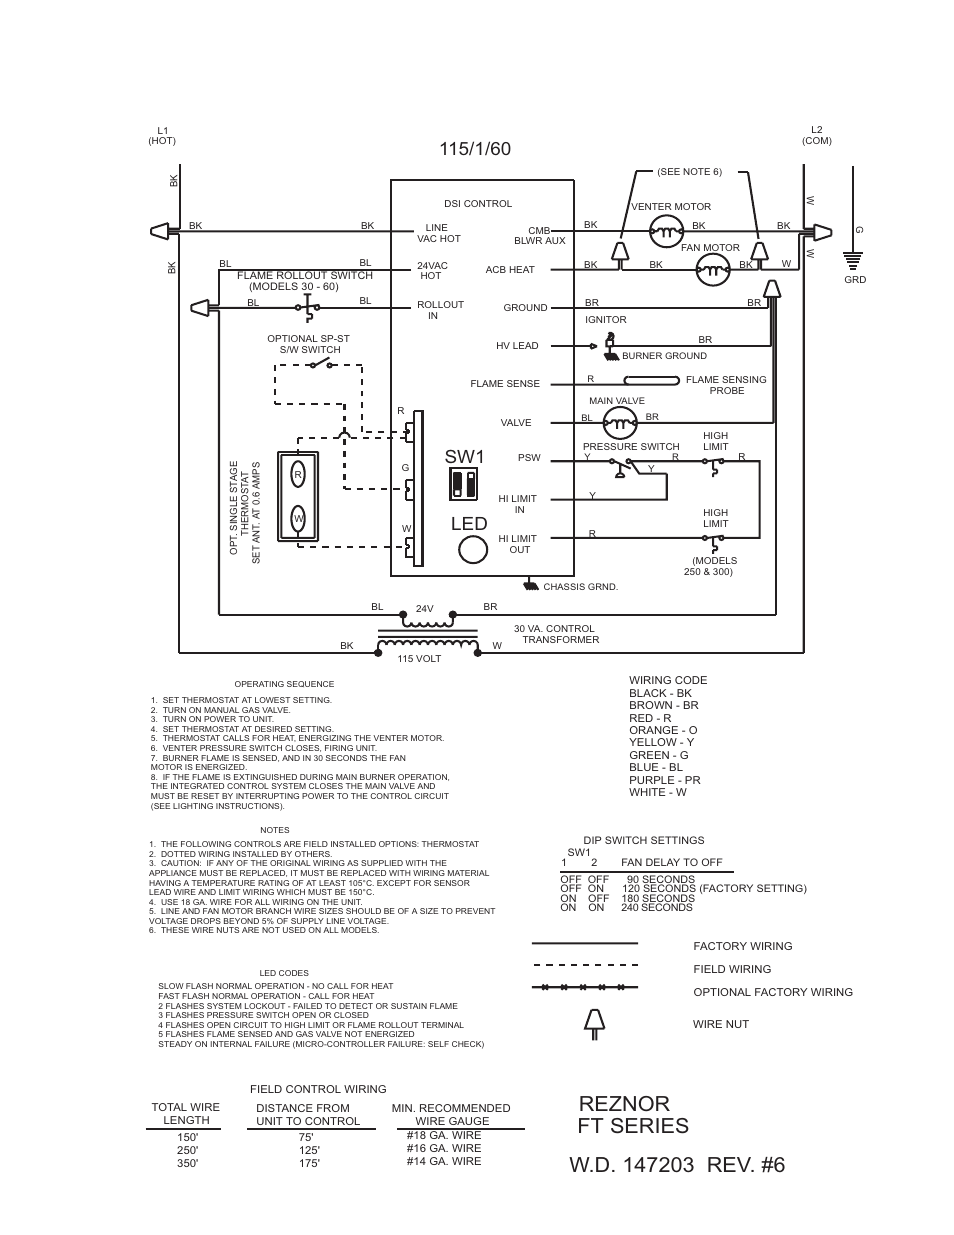 Gas Water Heater Vented With Fields Power Vent Wiring Diagram 61 Furnace Reznor Ft Unit Installation Manual Page13 Schematic Oil Pump At